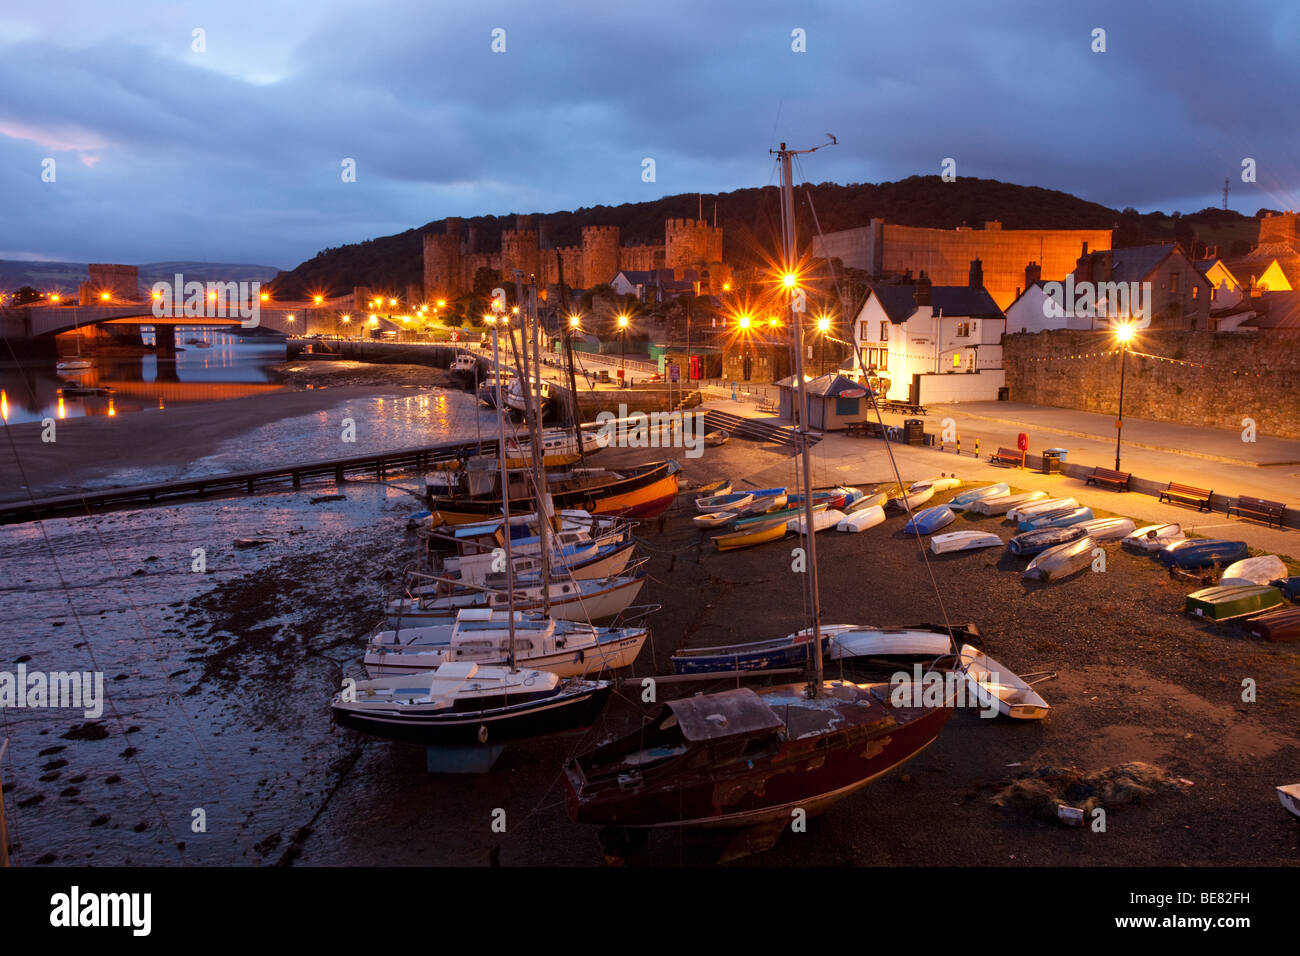 Conwy harbour scene before the morning light, with the streetlights shining on the boats and jetty. - Stock Image